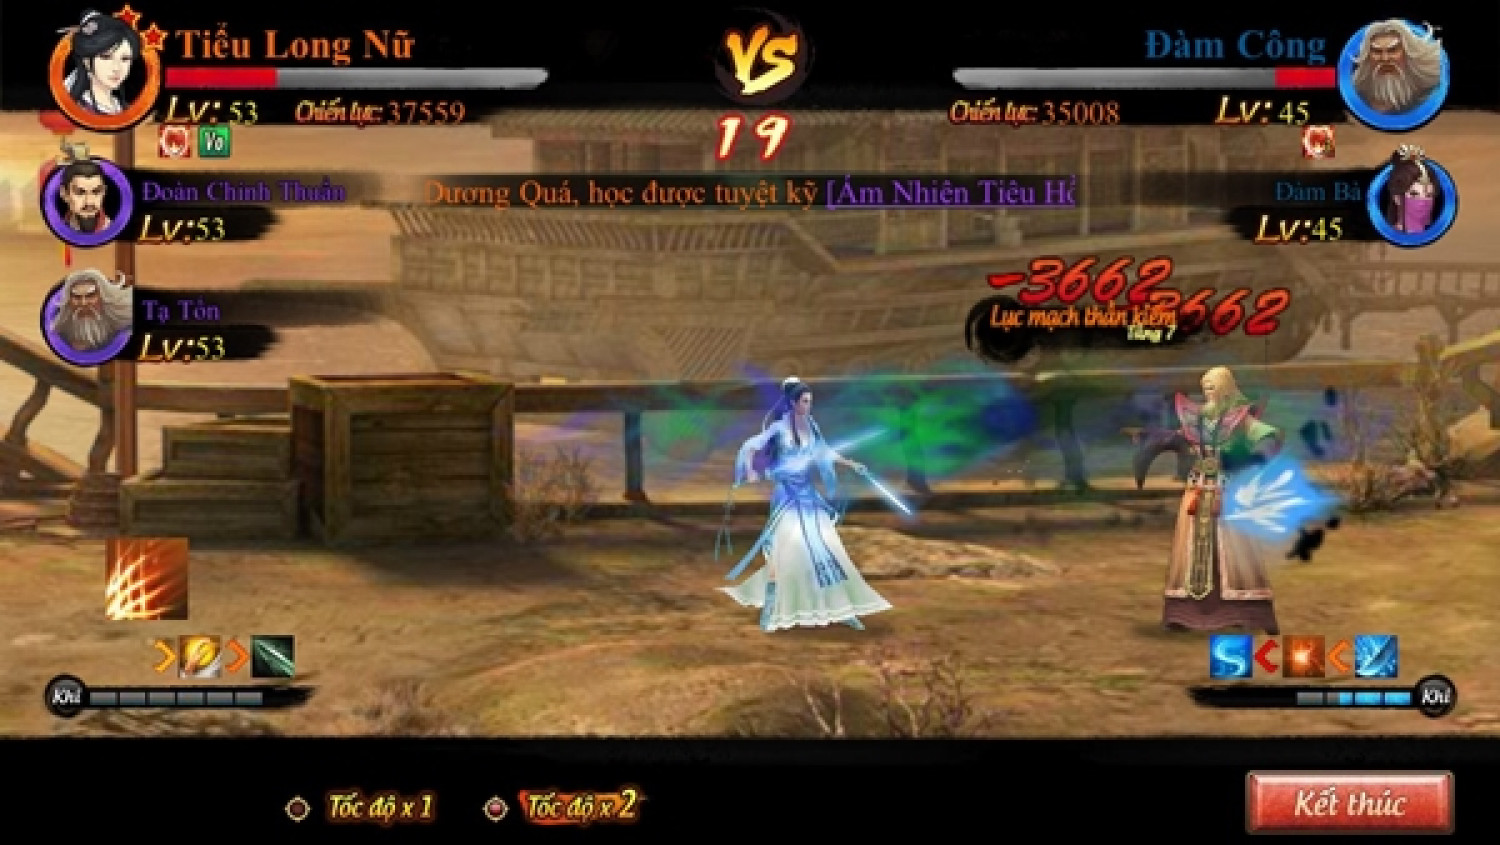 Download game online mien phi cho dien thoai